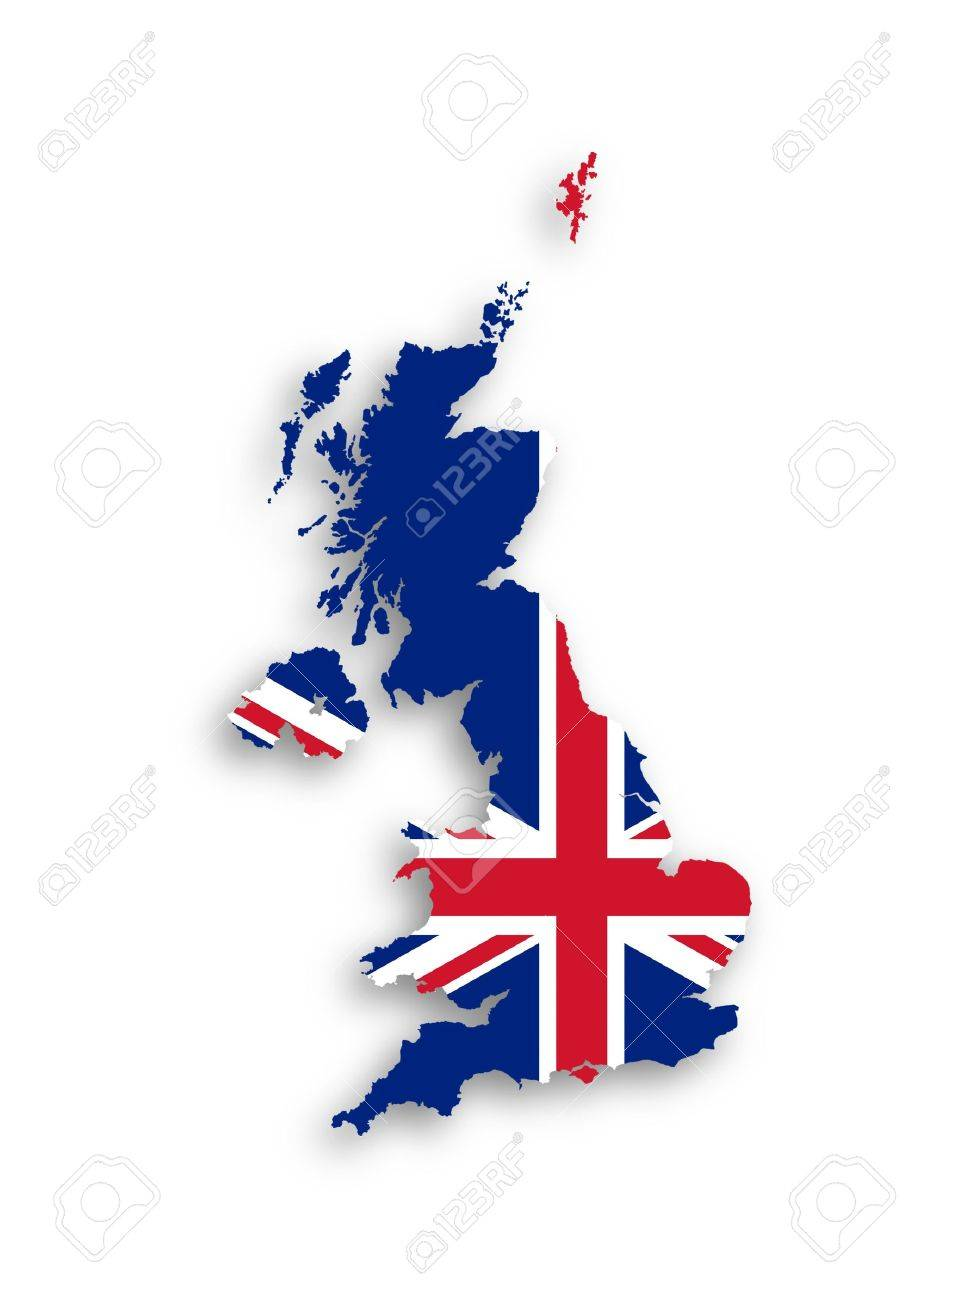 Map of the United Kingdom of Great Britain and Northern Ireland with national flag, isolated Stock Photo - 17733787